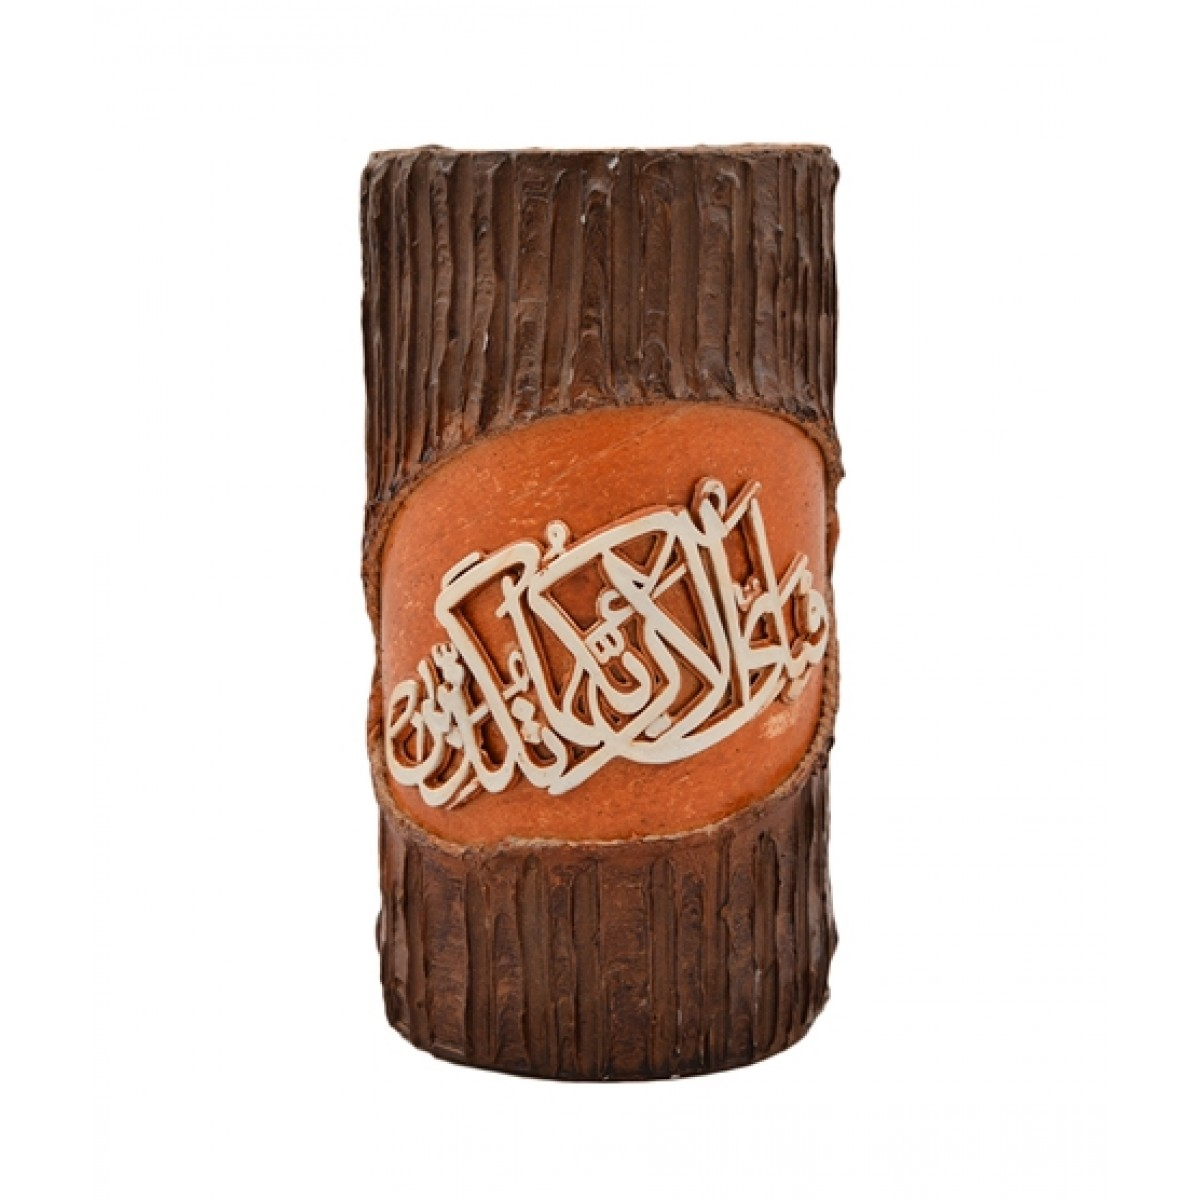 Asaan Buy Wooden Calligraphic Candle (F-221)